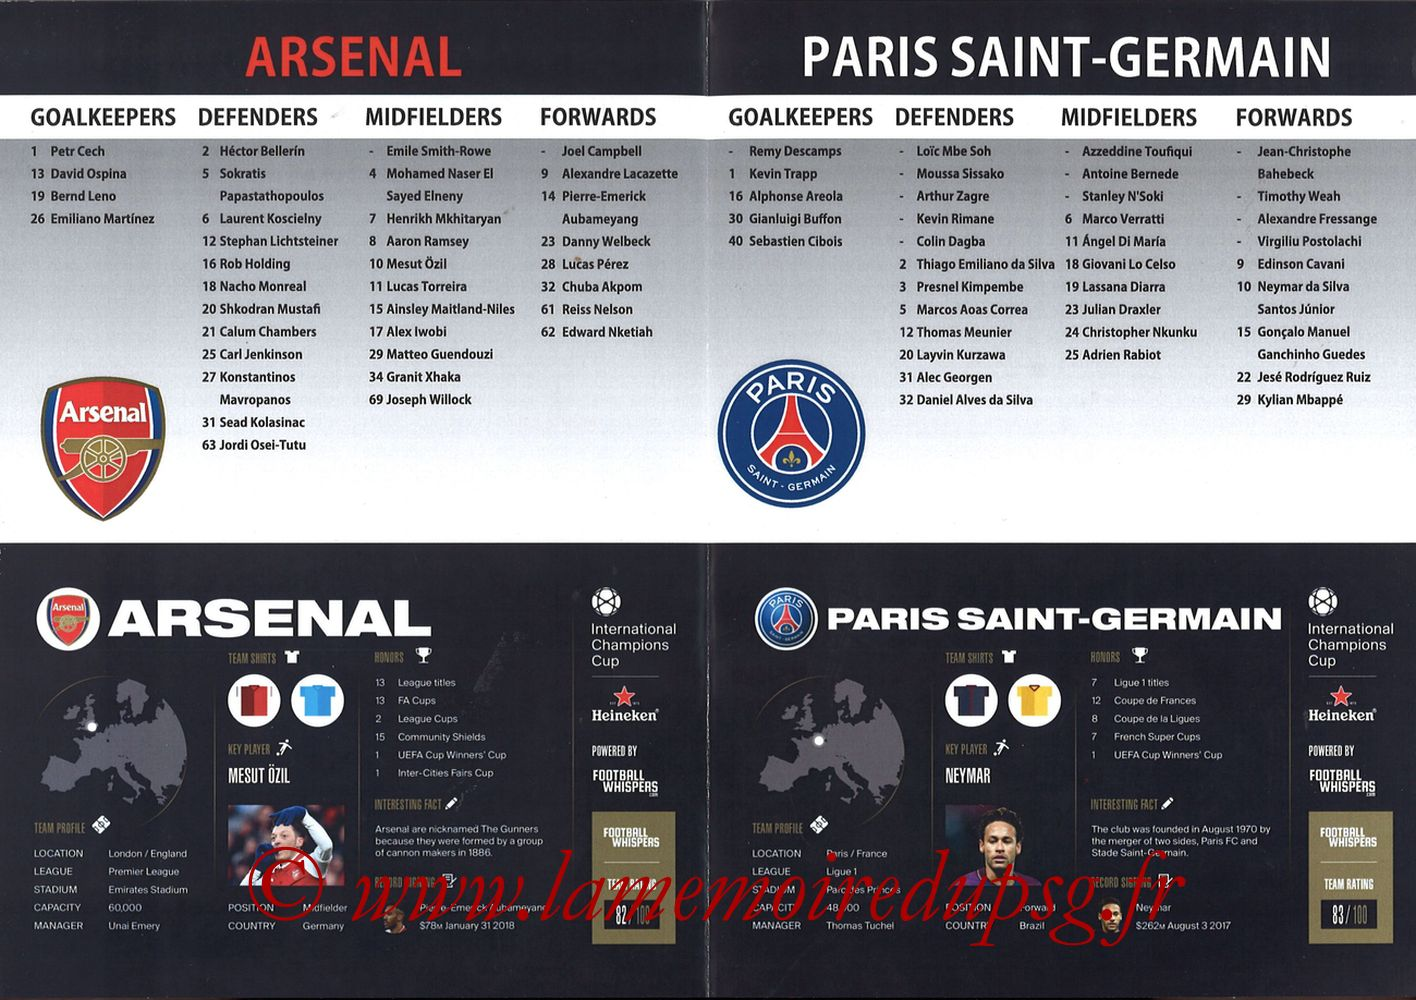 2018-07-28  Arsenal-PSG (International Champions Cup à Singapour, Programme pirate) - Pages 02 et 03